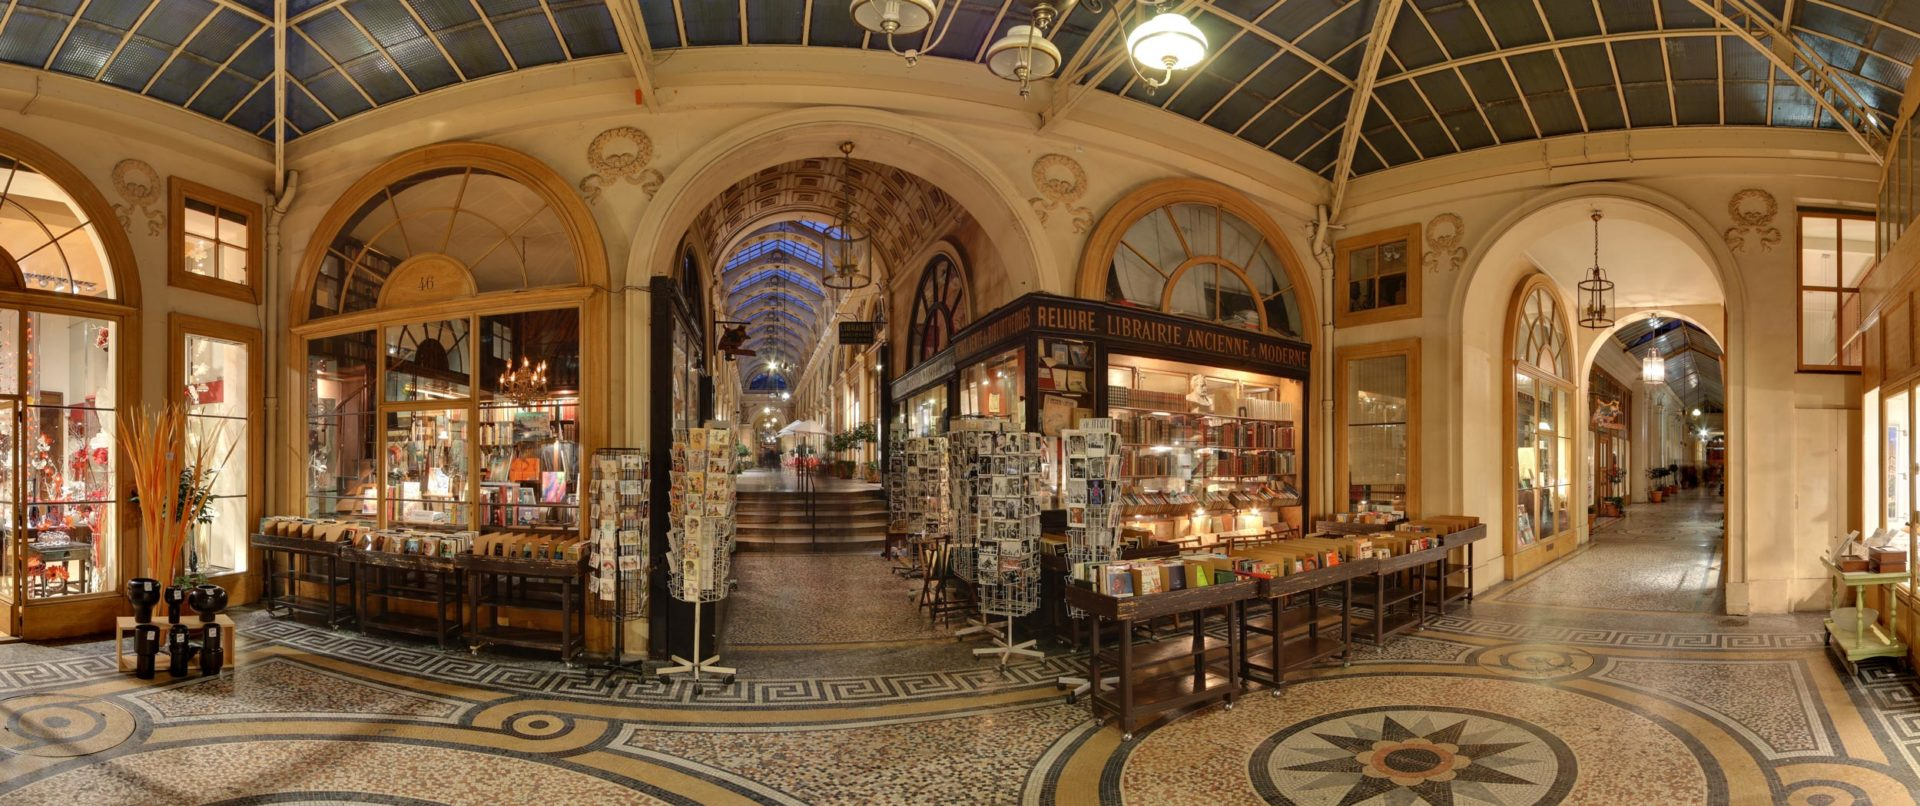 covered-passages-paris-galerie-vivienne-tour